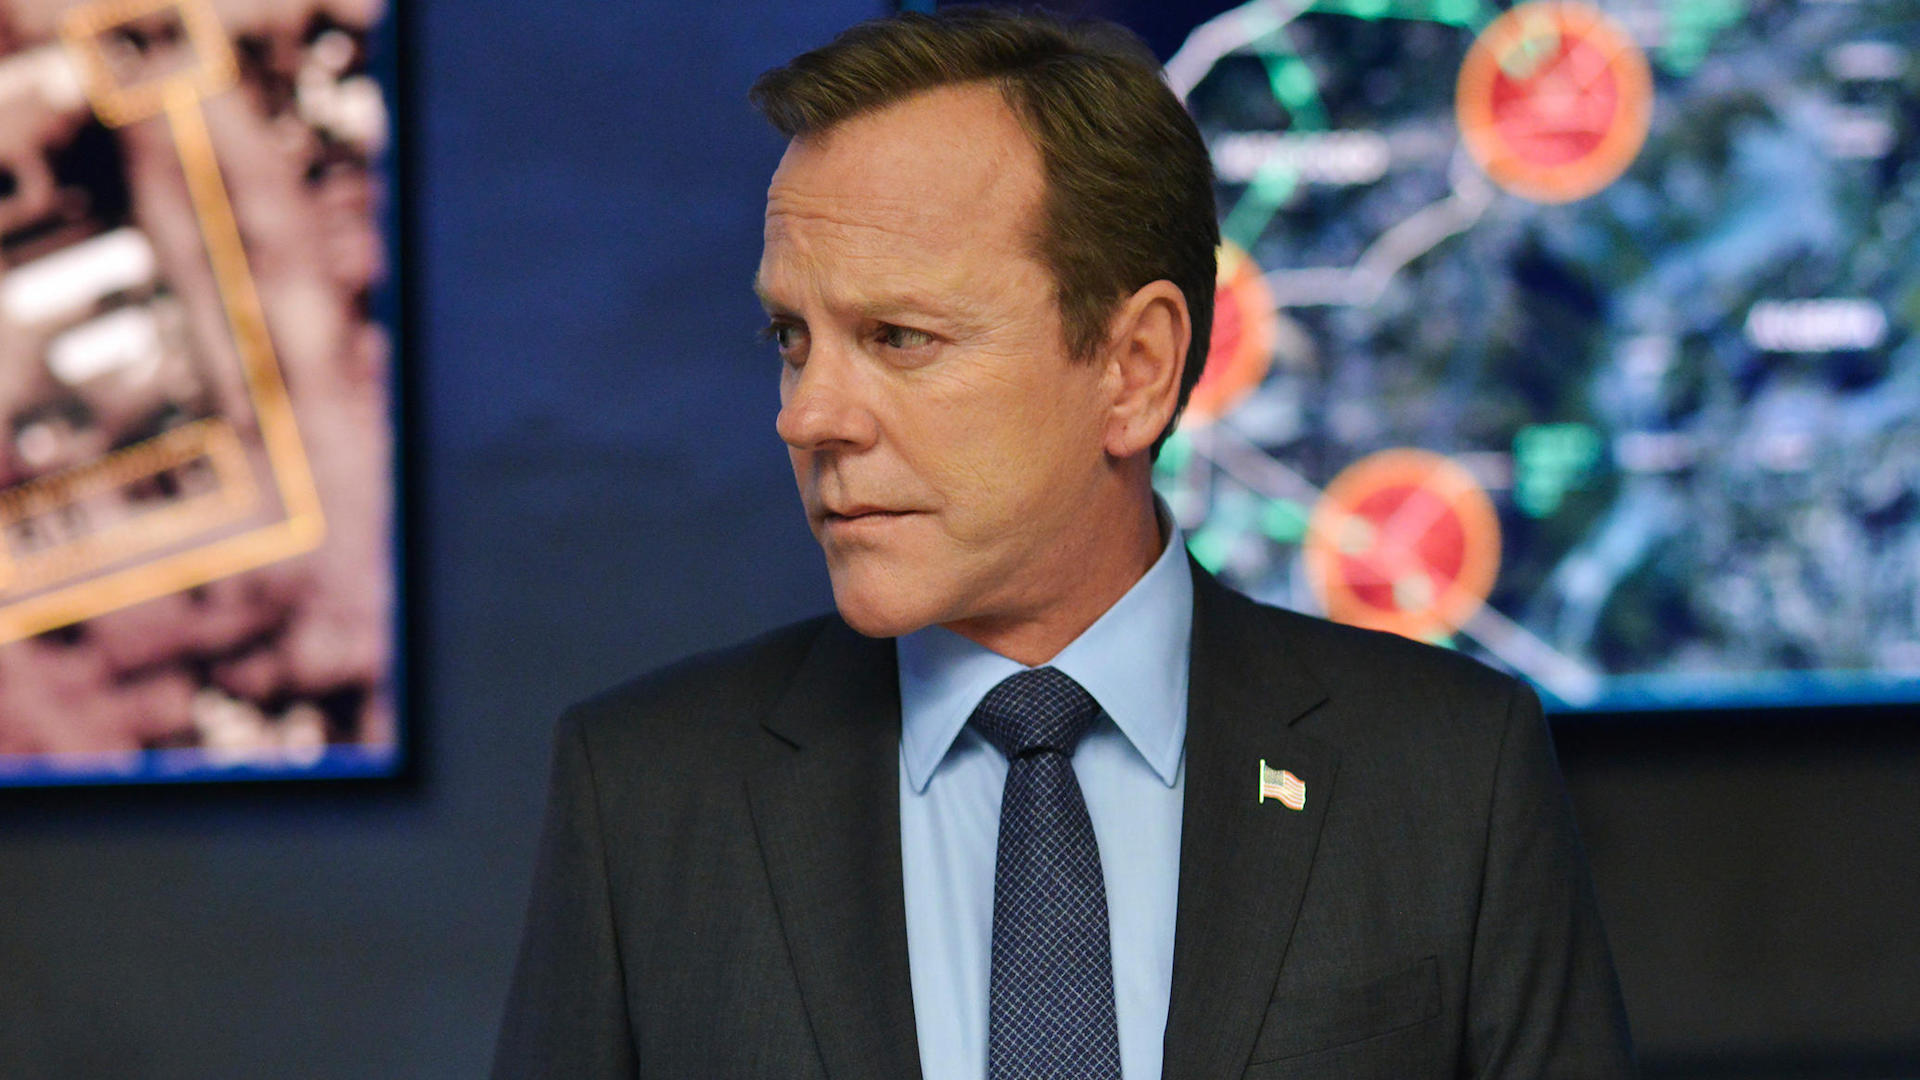 designated-survivor-kiefer-sutherland-critica-review-abc-netflix-imagen-15102016.jpg